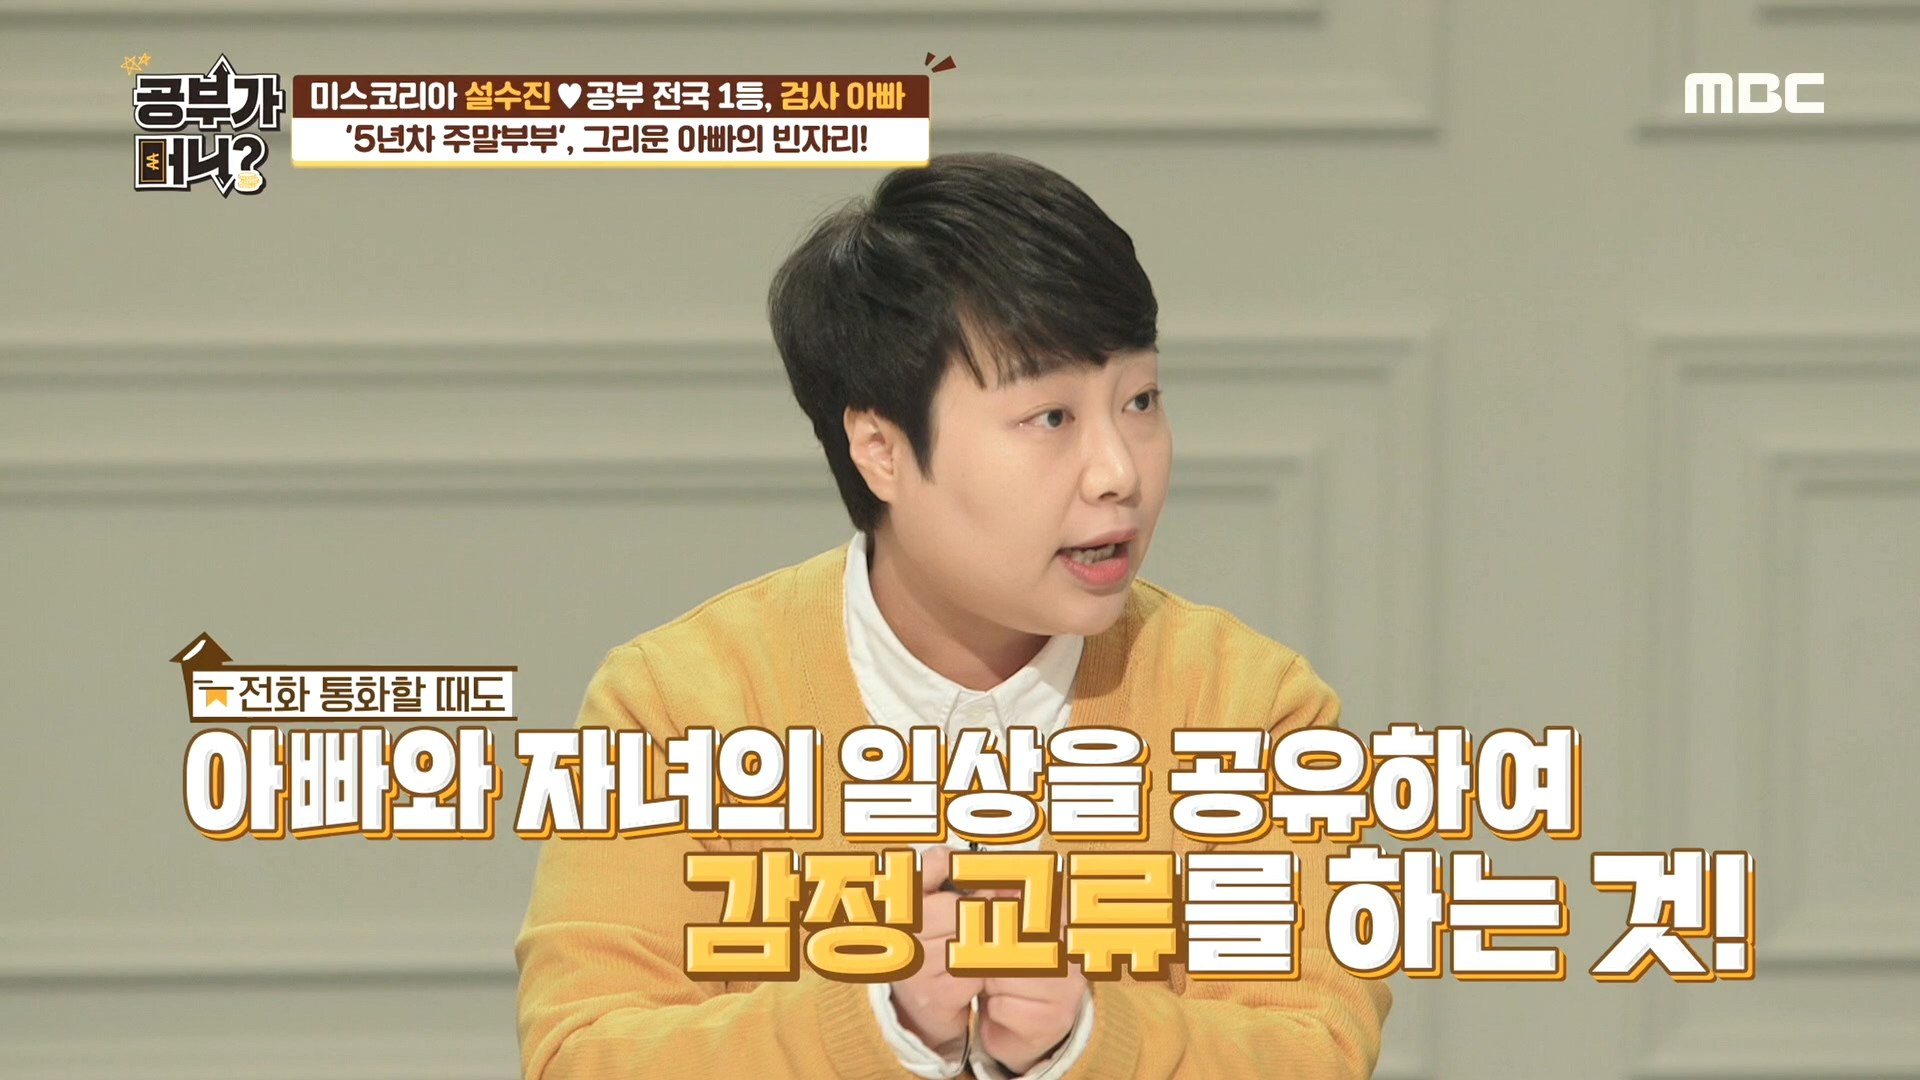 [what is study] exchange daily routine 공부가 머니? 20200320